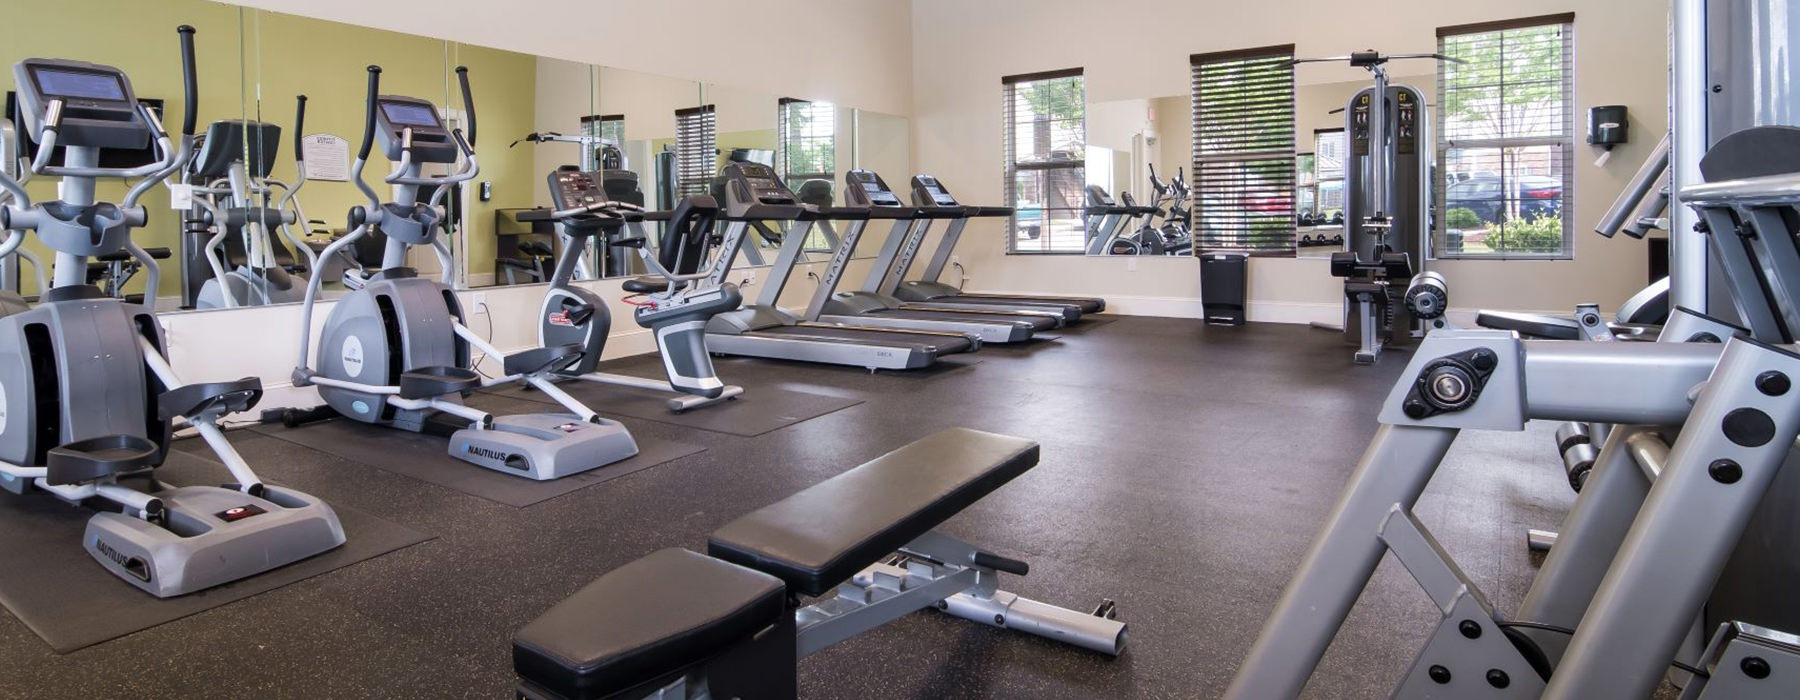 Fully Equipped Fitness Center with ample machines